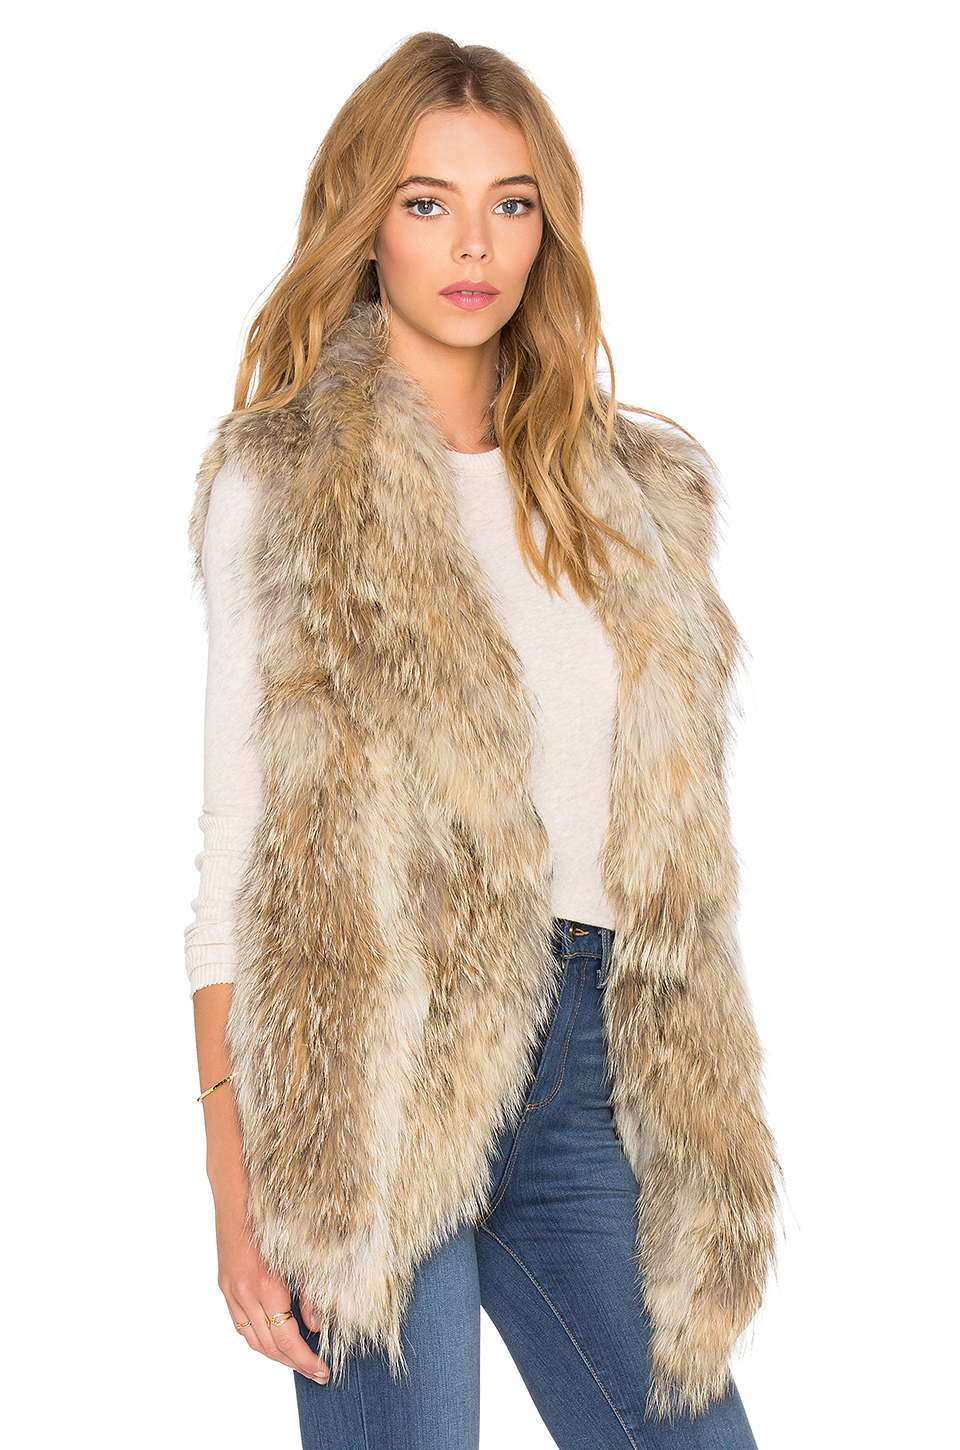 Lyst Ashley B Knitted Coyote Fur Vest In Natural Watermelon Wallpaper Rainbow Find Free HD for Desktop [freshlhys.tk]